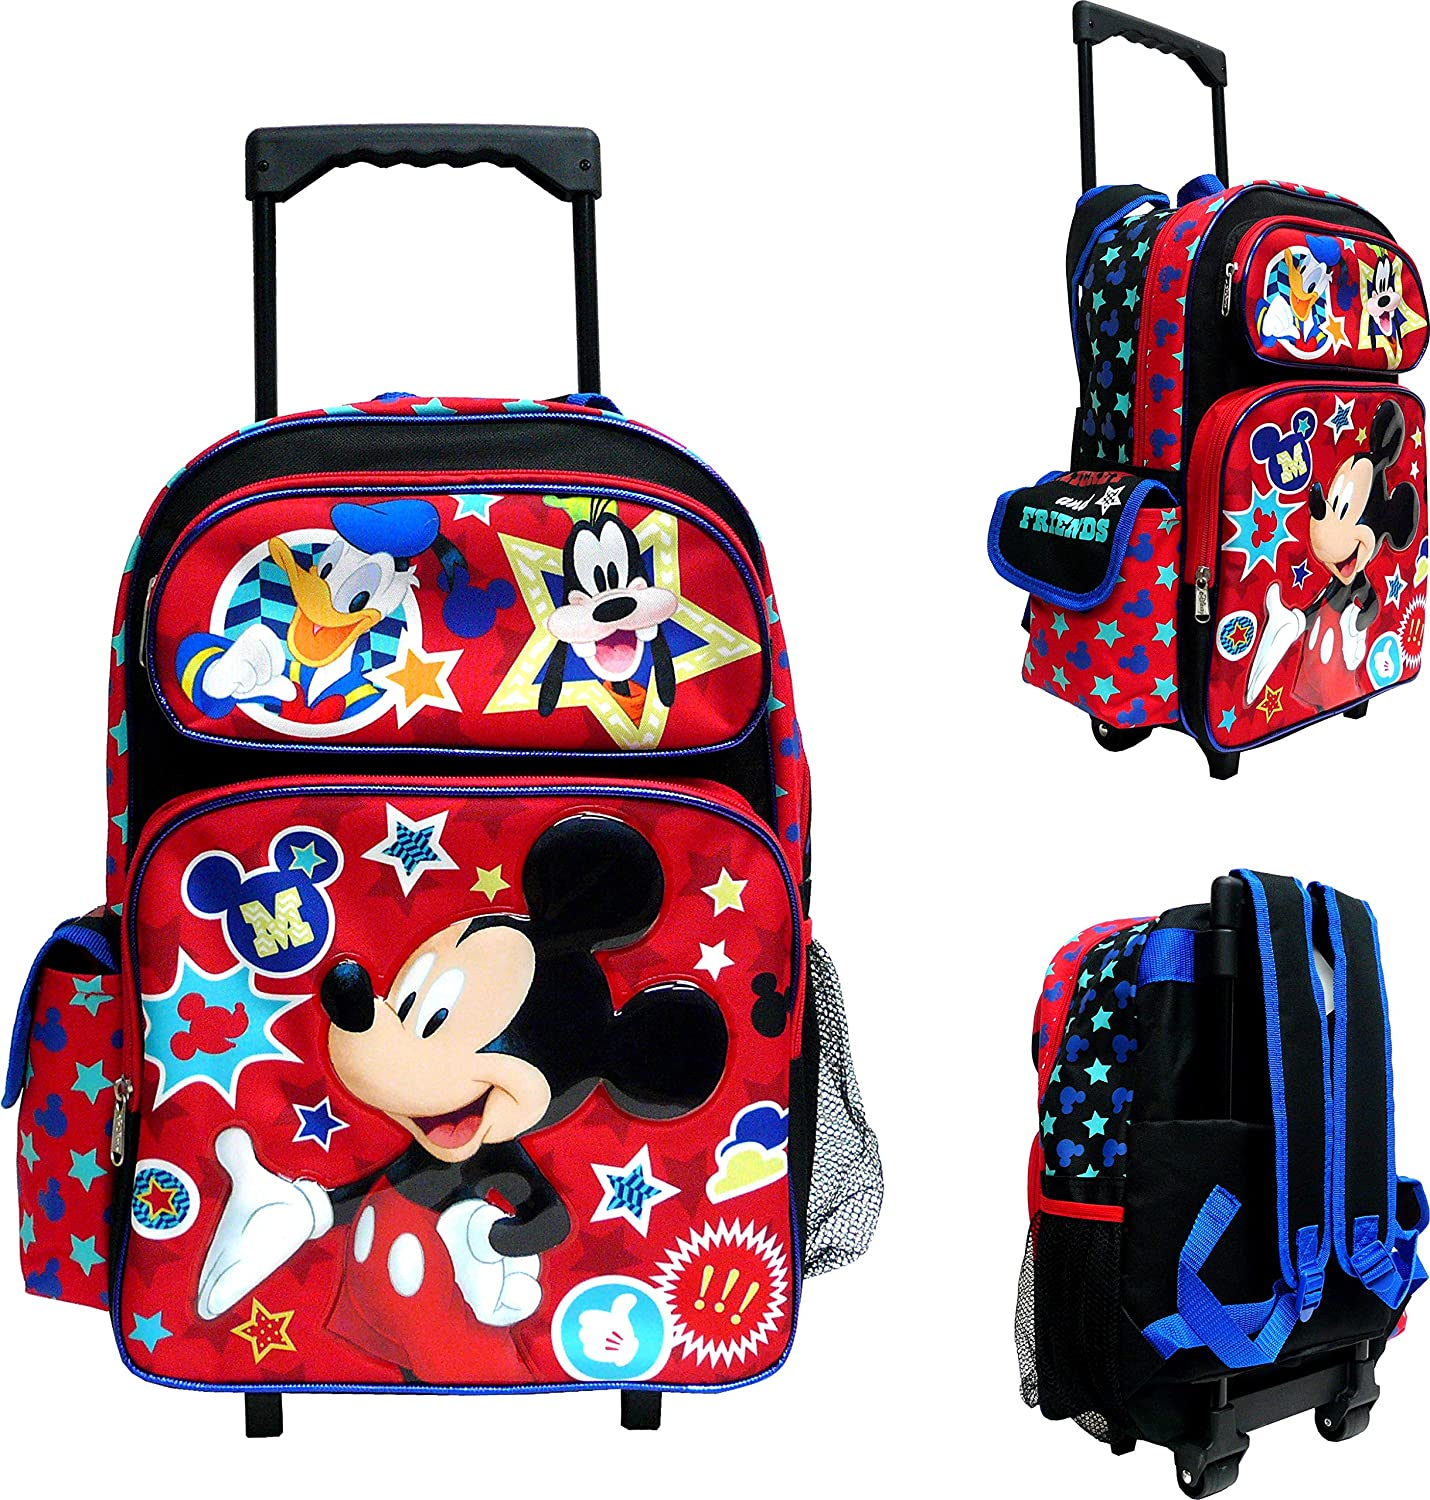 Disney Mickey Mouse Large Rolling Backpack